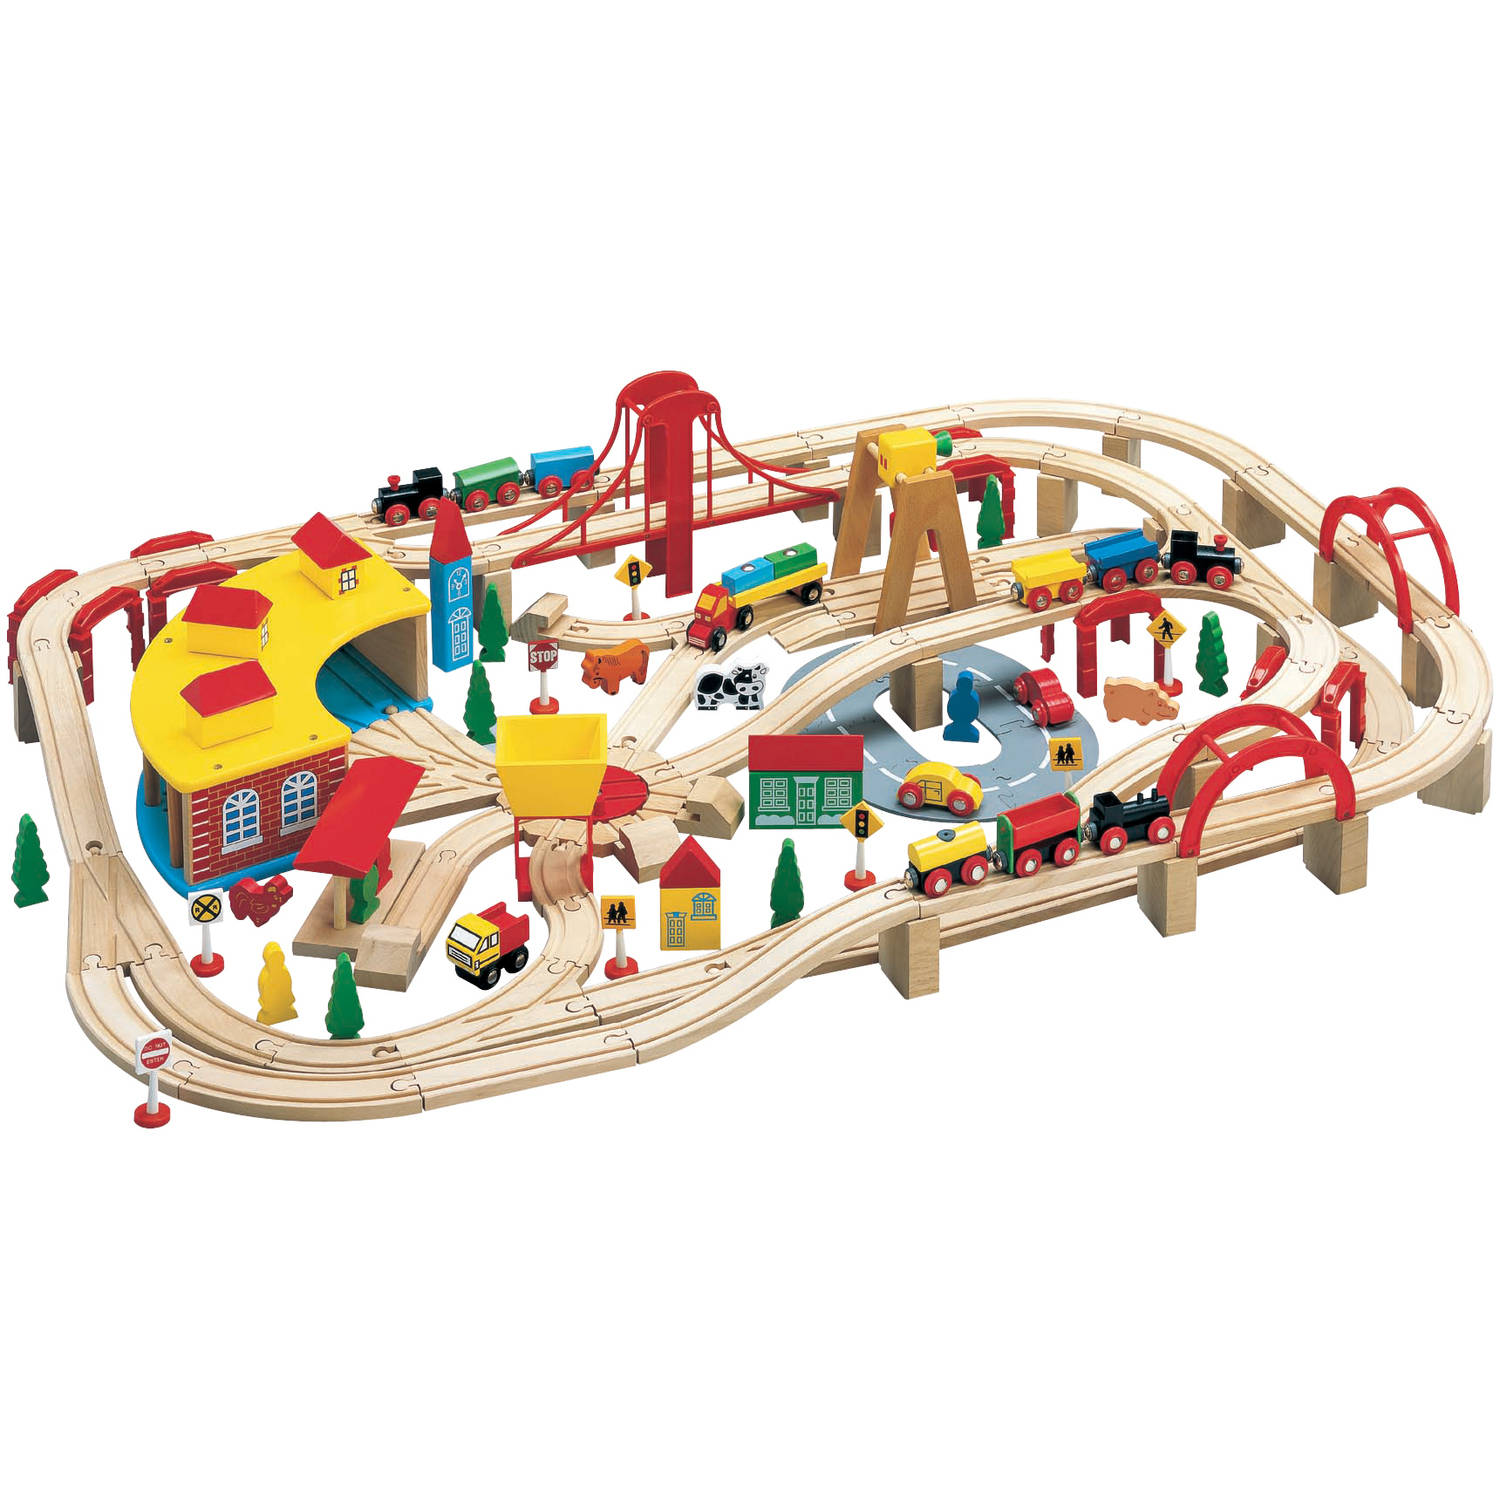 wooden train play set 145 piece. Black Bedroom Furniture Sets. Home Design Ideas